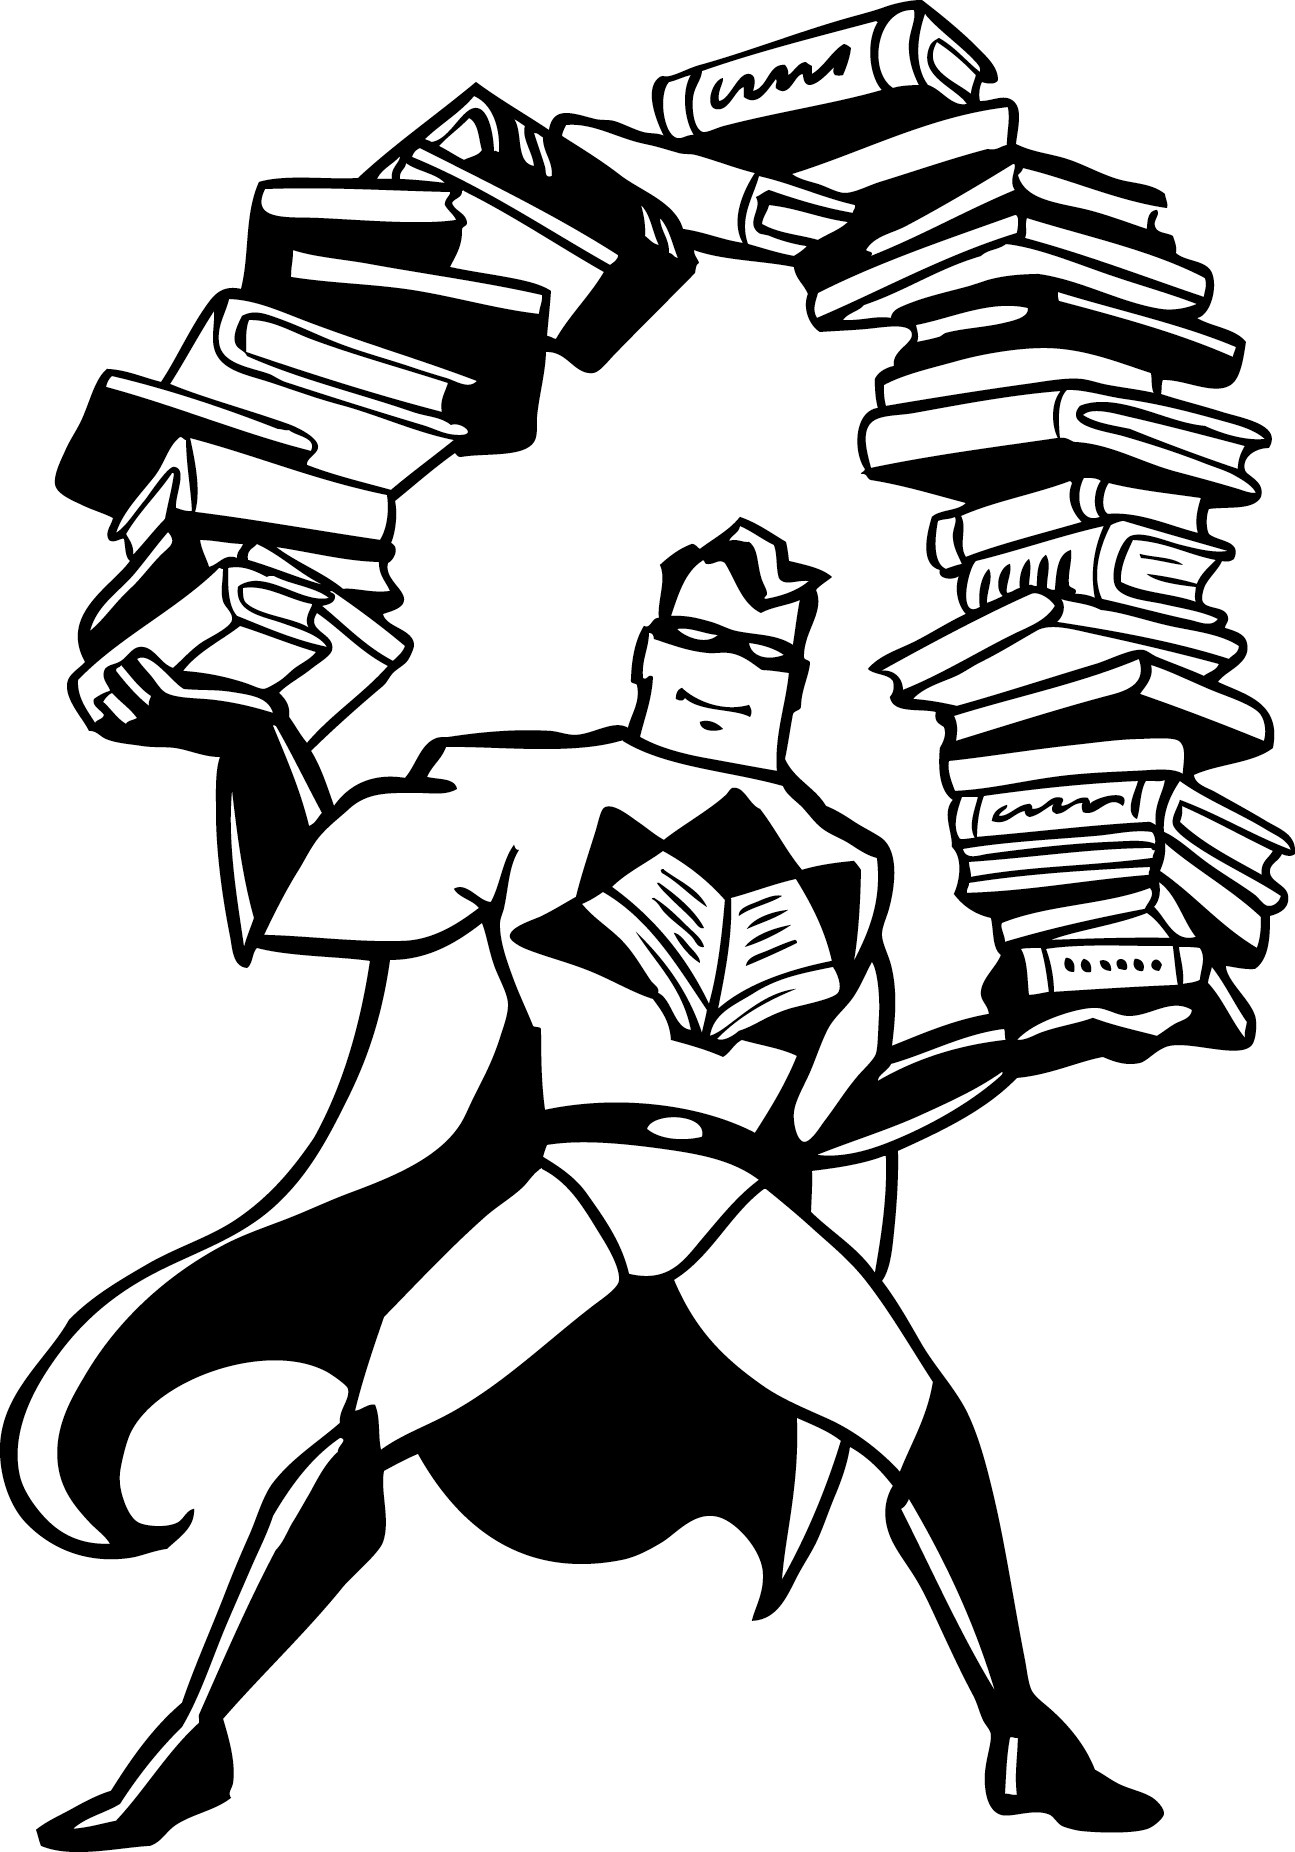 Super Book Man